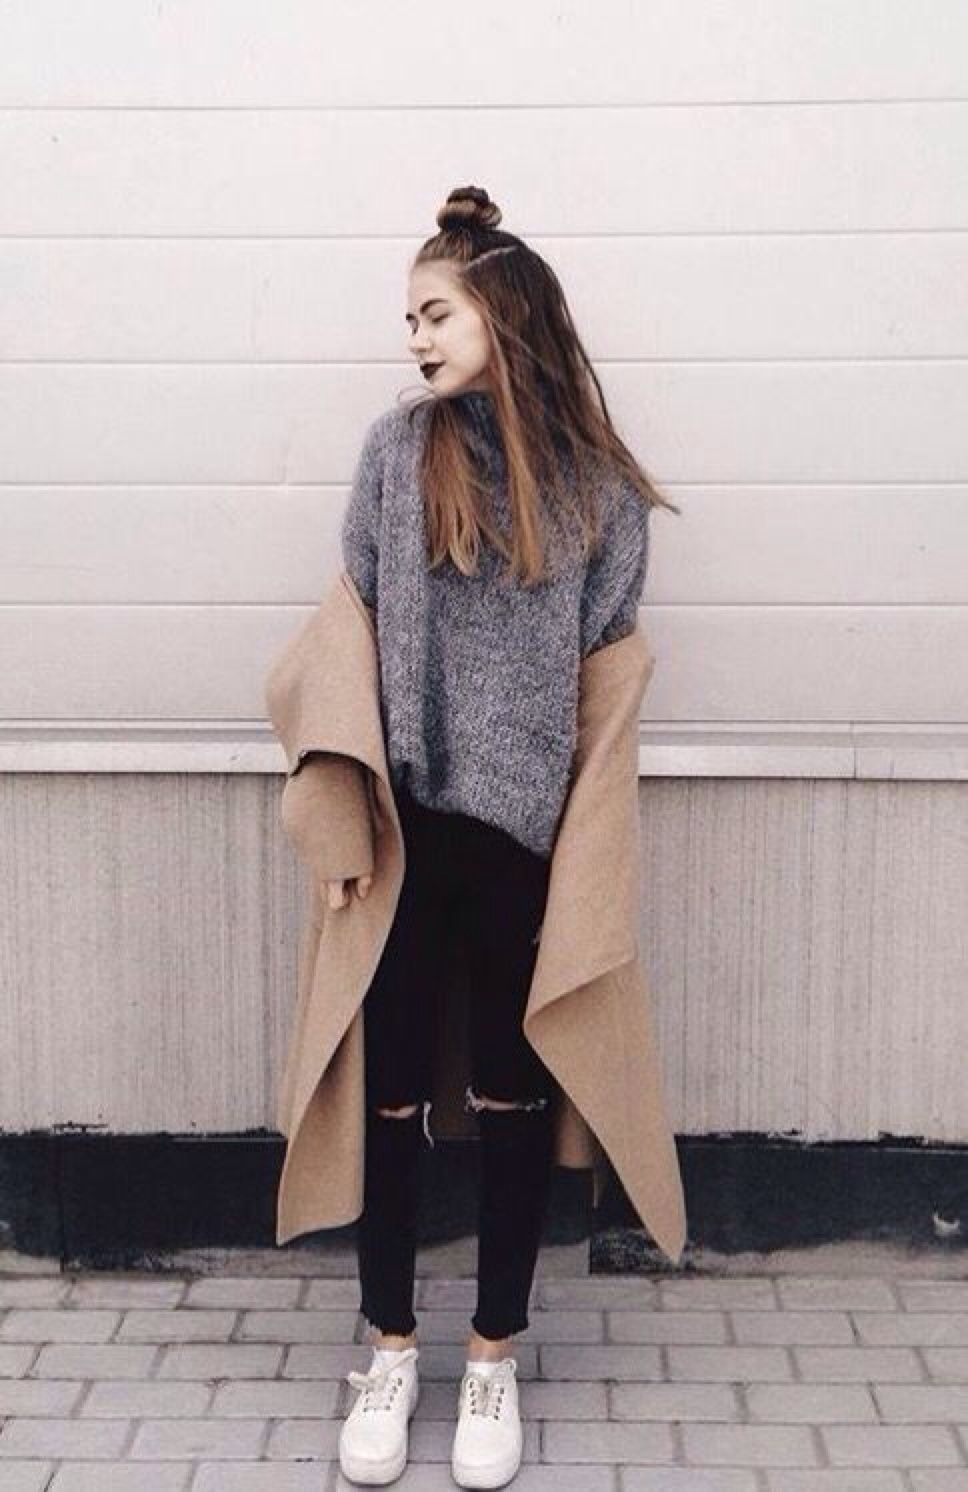 Grunge Street Outfit For Winter Pictures, Photos, and ...